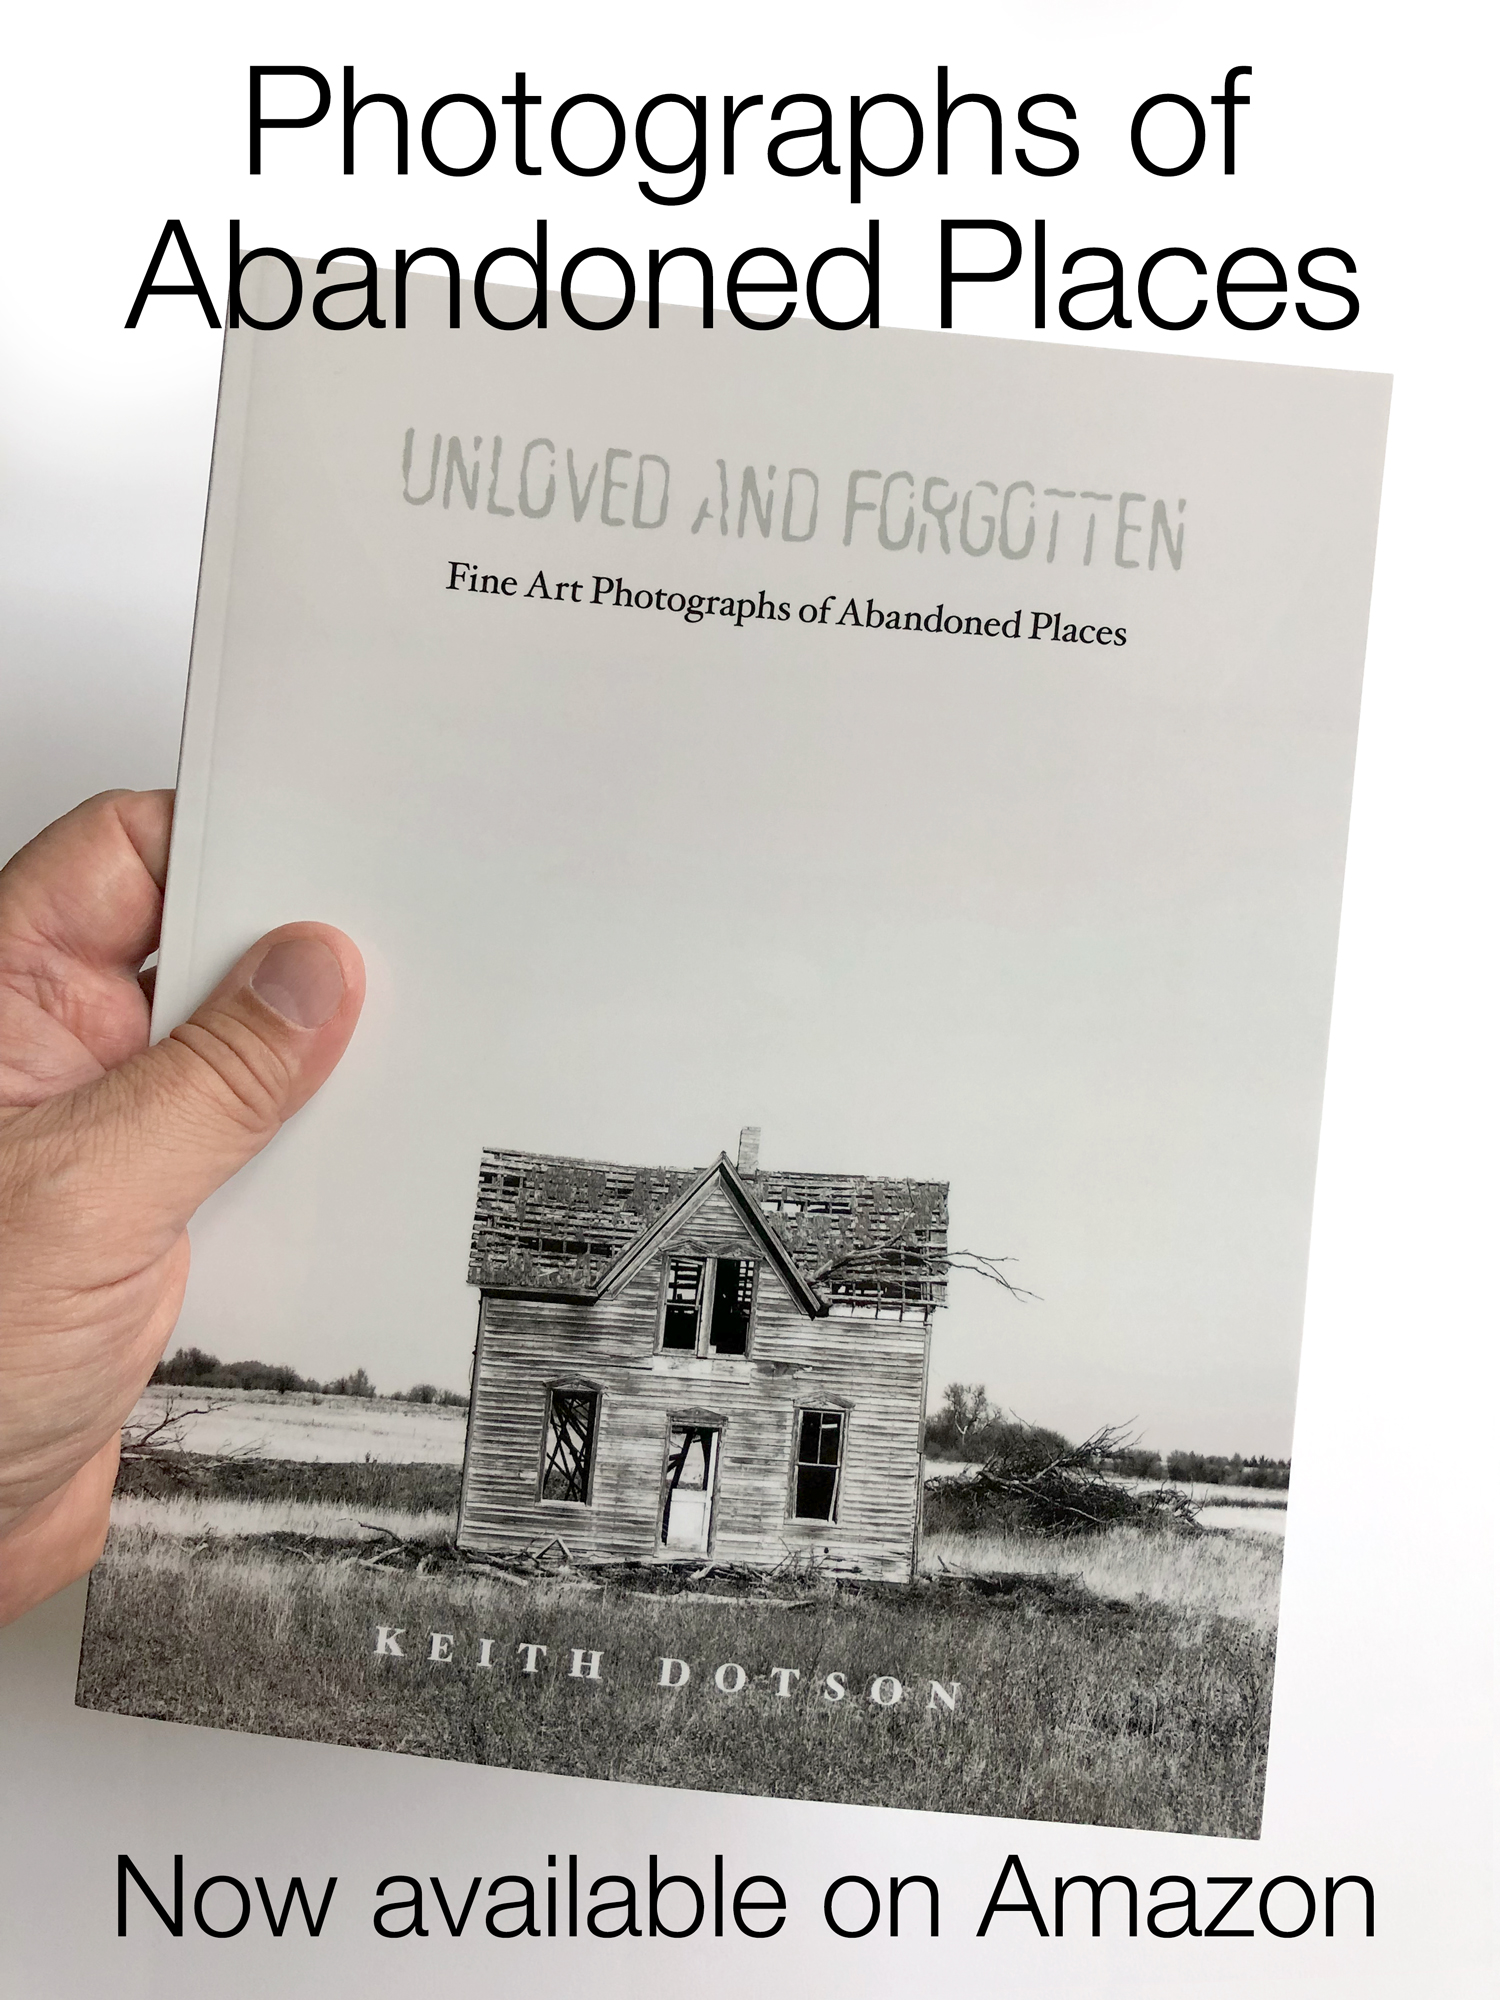 Keith Dotson Photography Book of Abandoned Places